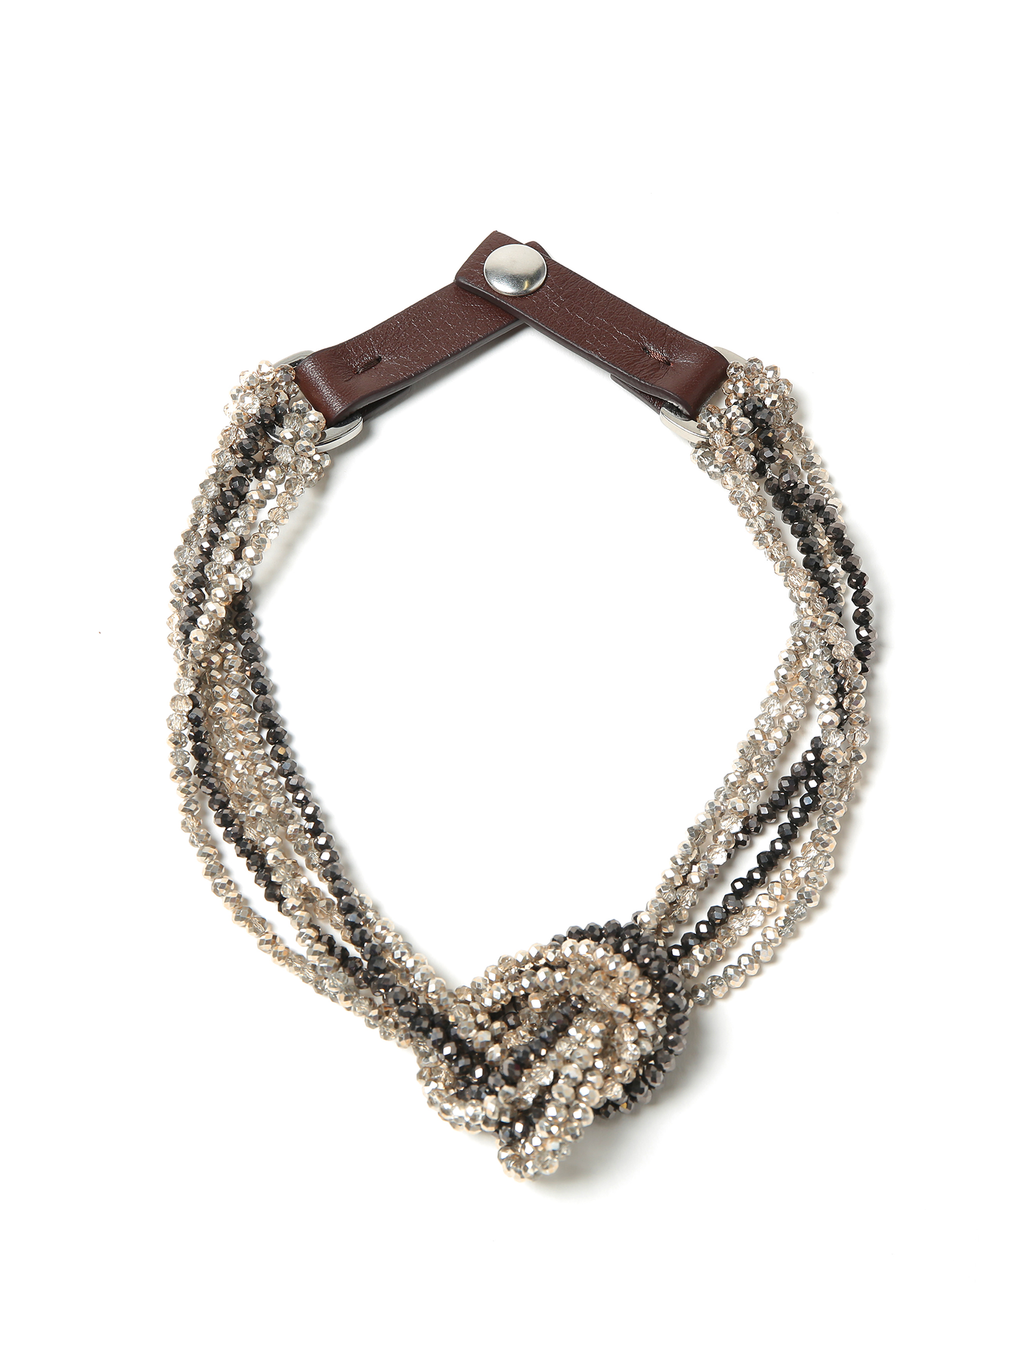 Peserico Choker Necklace in Demi Crystals with Leather Strap